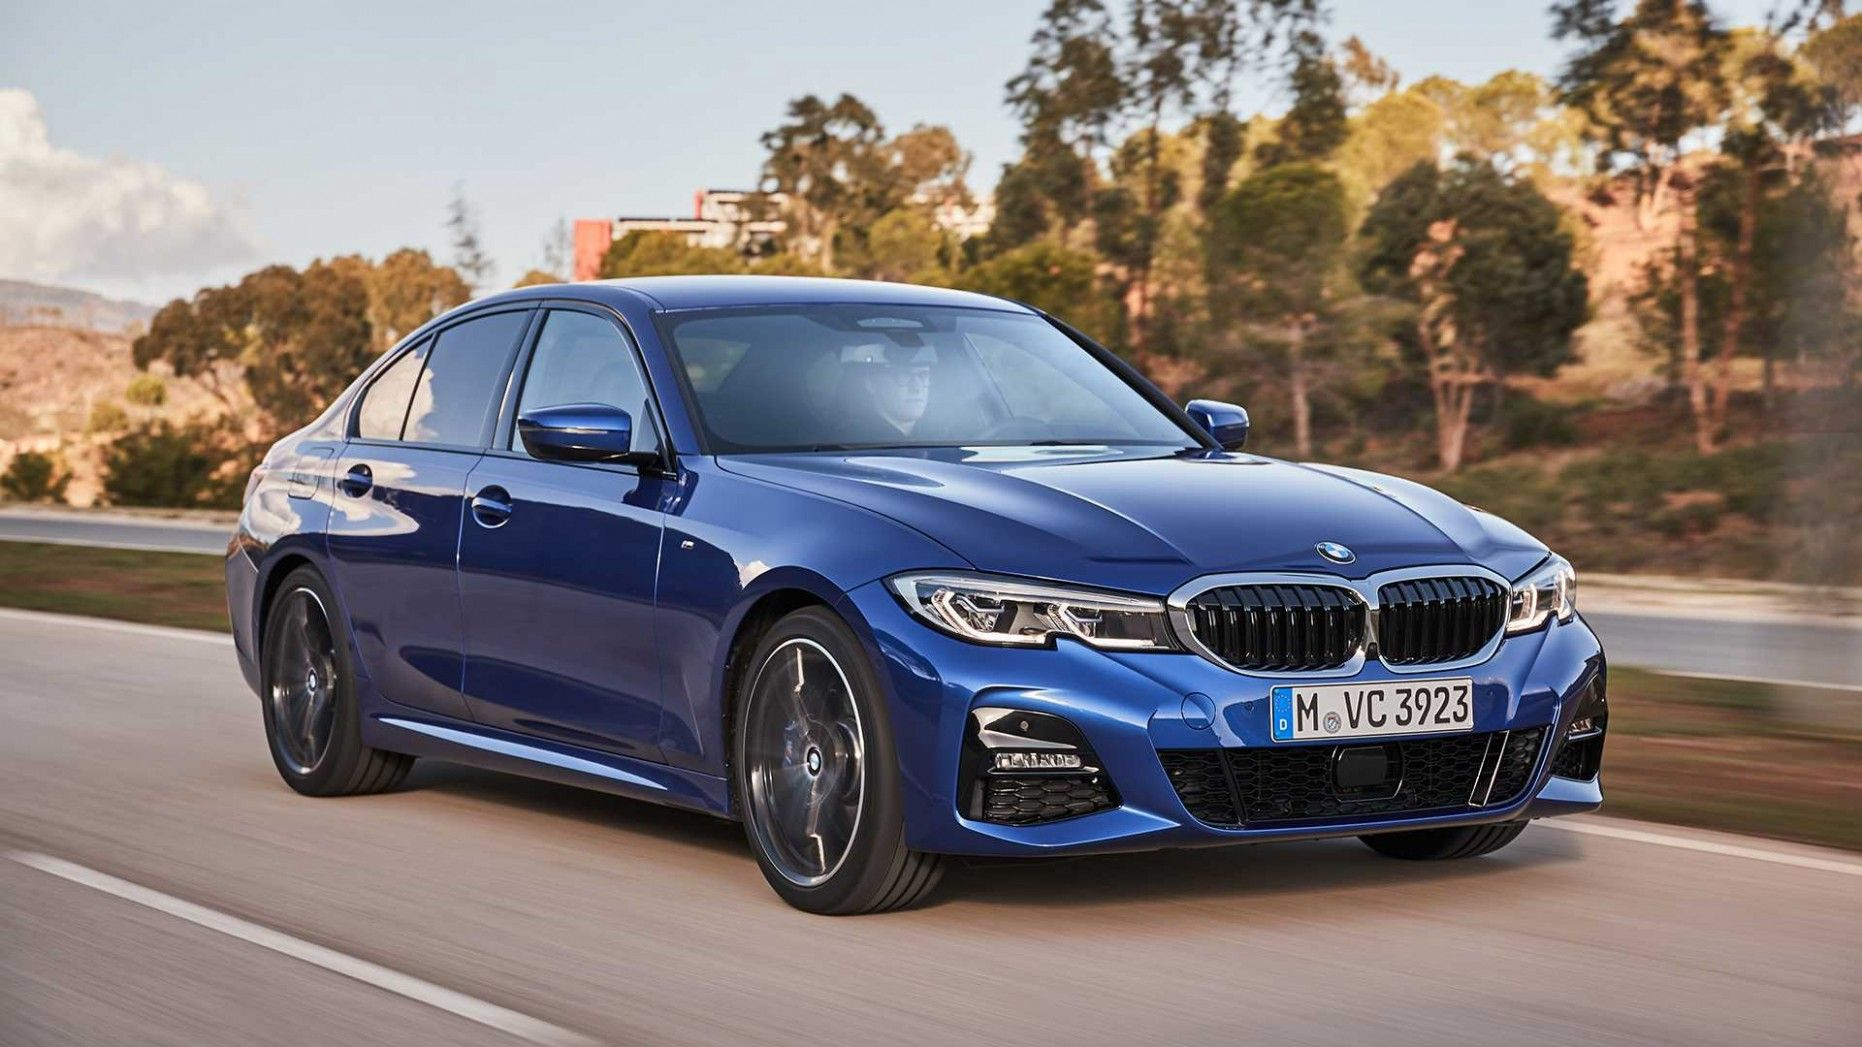 2020 Bmw 3 Series Price And Review Bmw 3 Series New Bmw 3